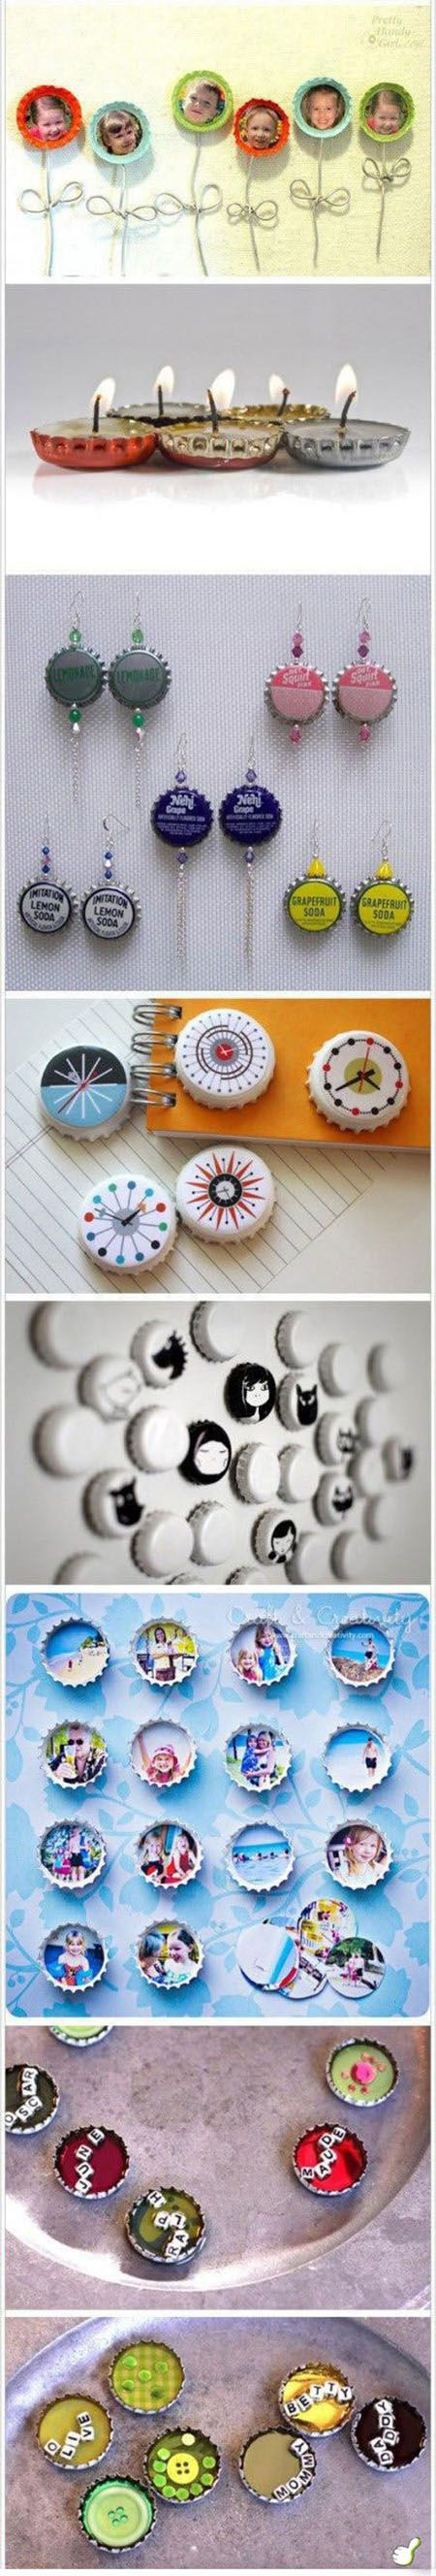 Beautiful Bottle Cap Crafts | DIY & Crafts Tutorials